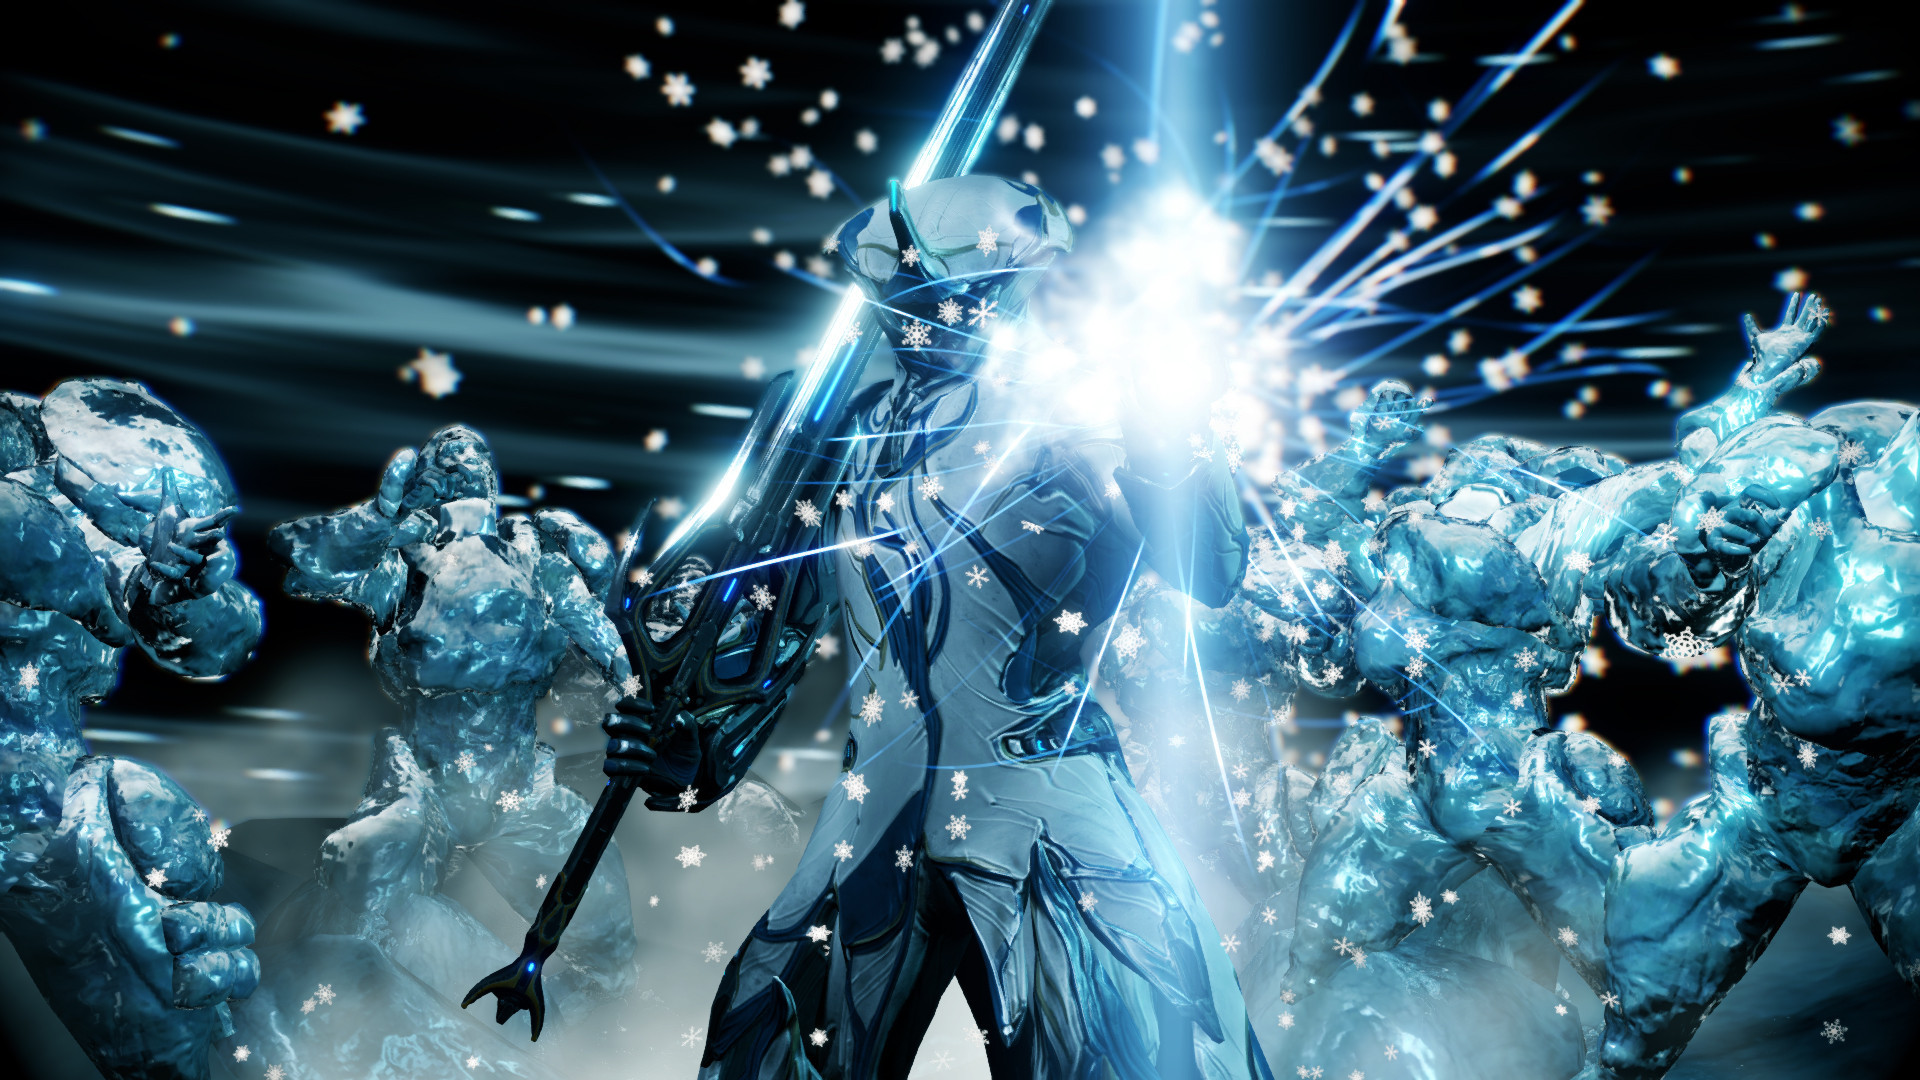 Res: 1920x1080, Warframe update 15: Archwing. So Glorious. | Folklores and Fossils |  Pinterest | Wallpaper, Anime fantasy and Mobile wallpaper